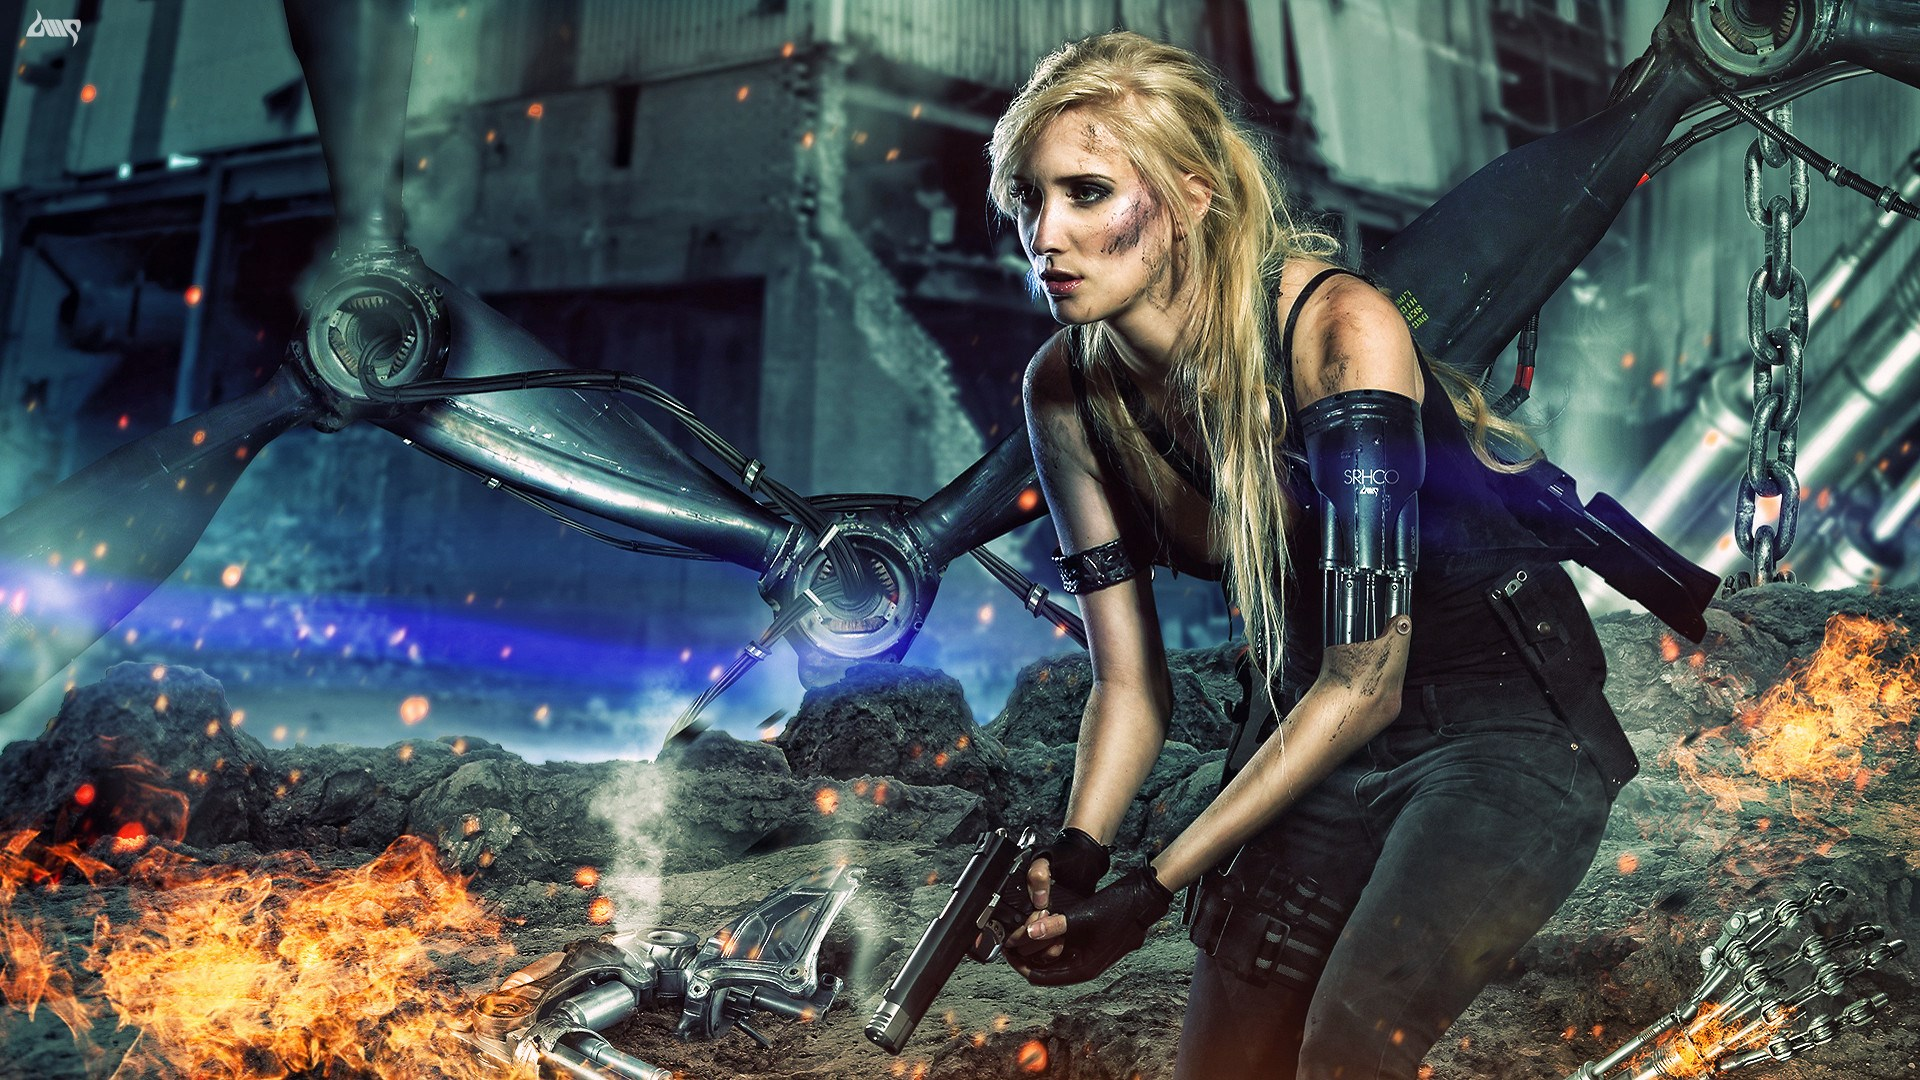 1920x1080-HQ-Definition-Desktop-women-warrior-wallpaper-wpc9201100